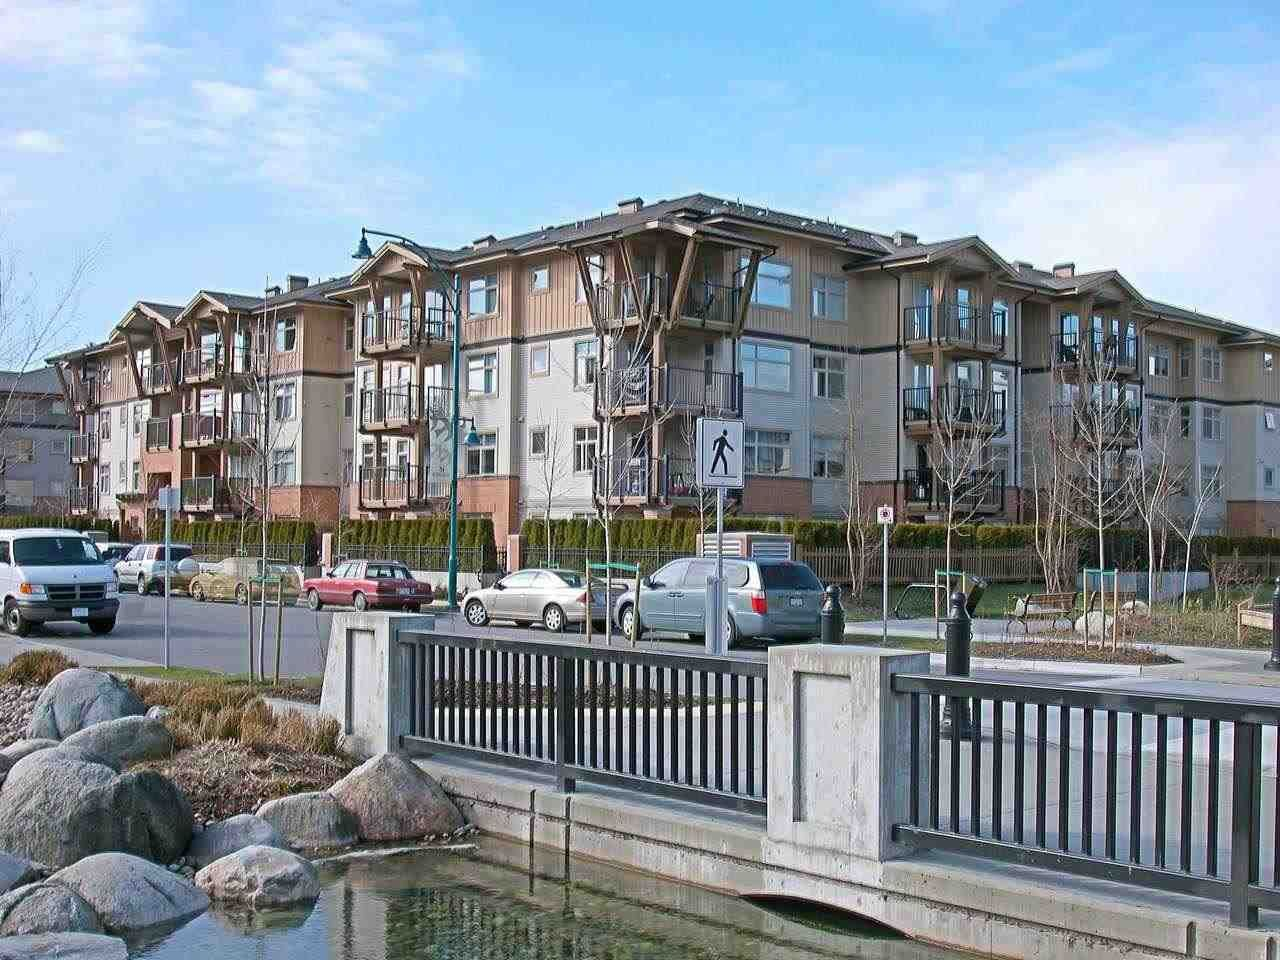 """Main Photo: 308 500 KLAHANIE Drive in Port Moody: Port Moody Centre Condo for sale in """"TIDES"""" : MLS®# R2403945"""